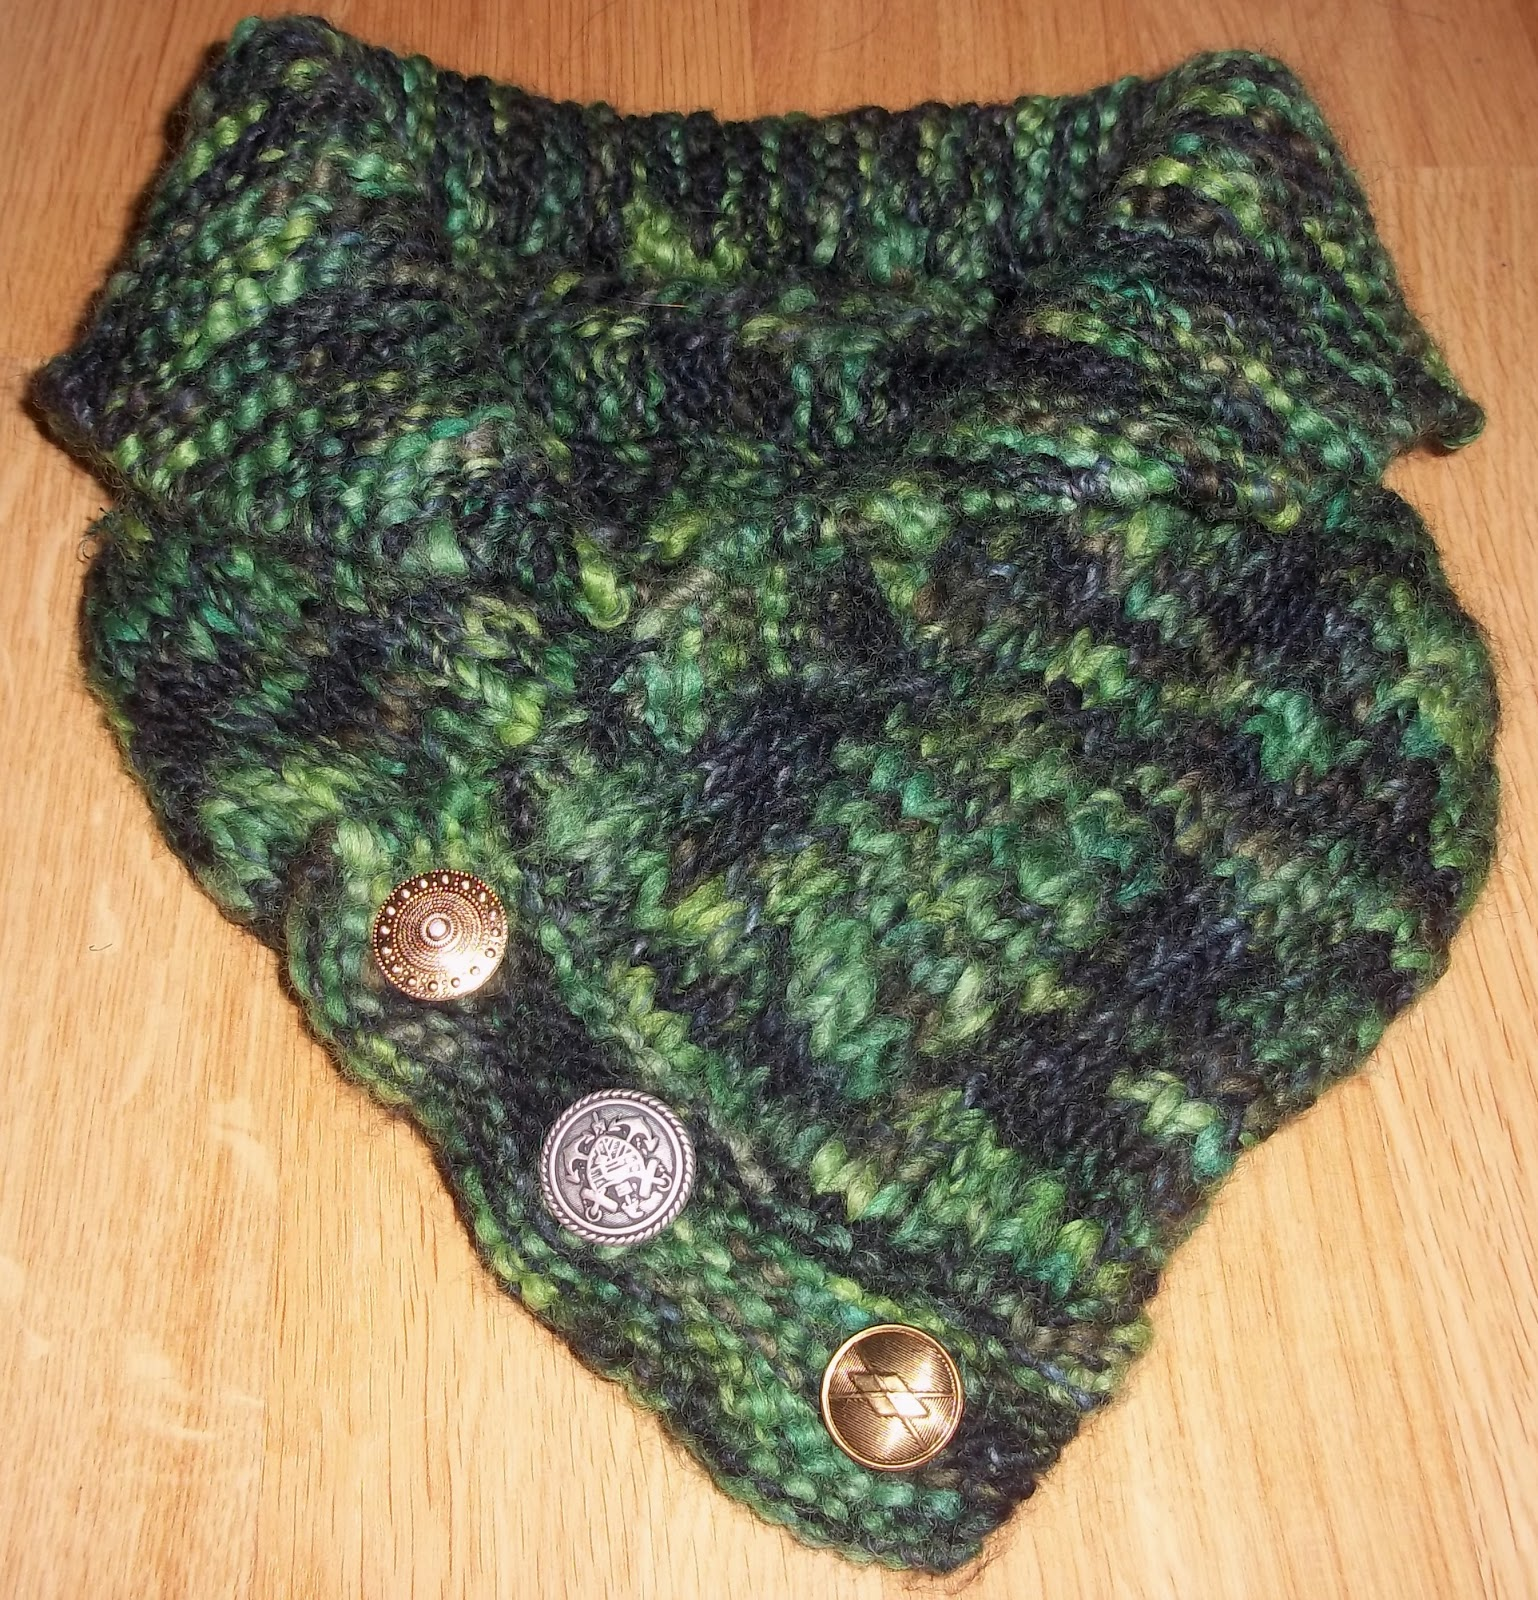 Lucy 'In the sky': Shawl Collared Cowl